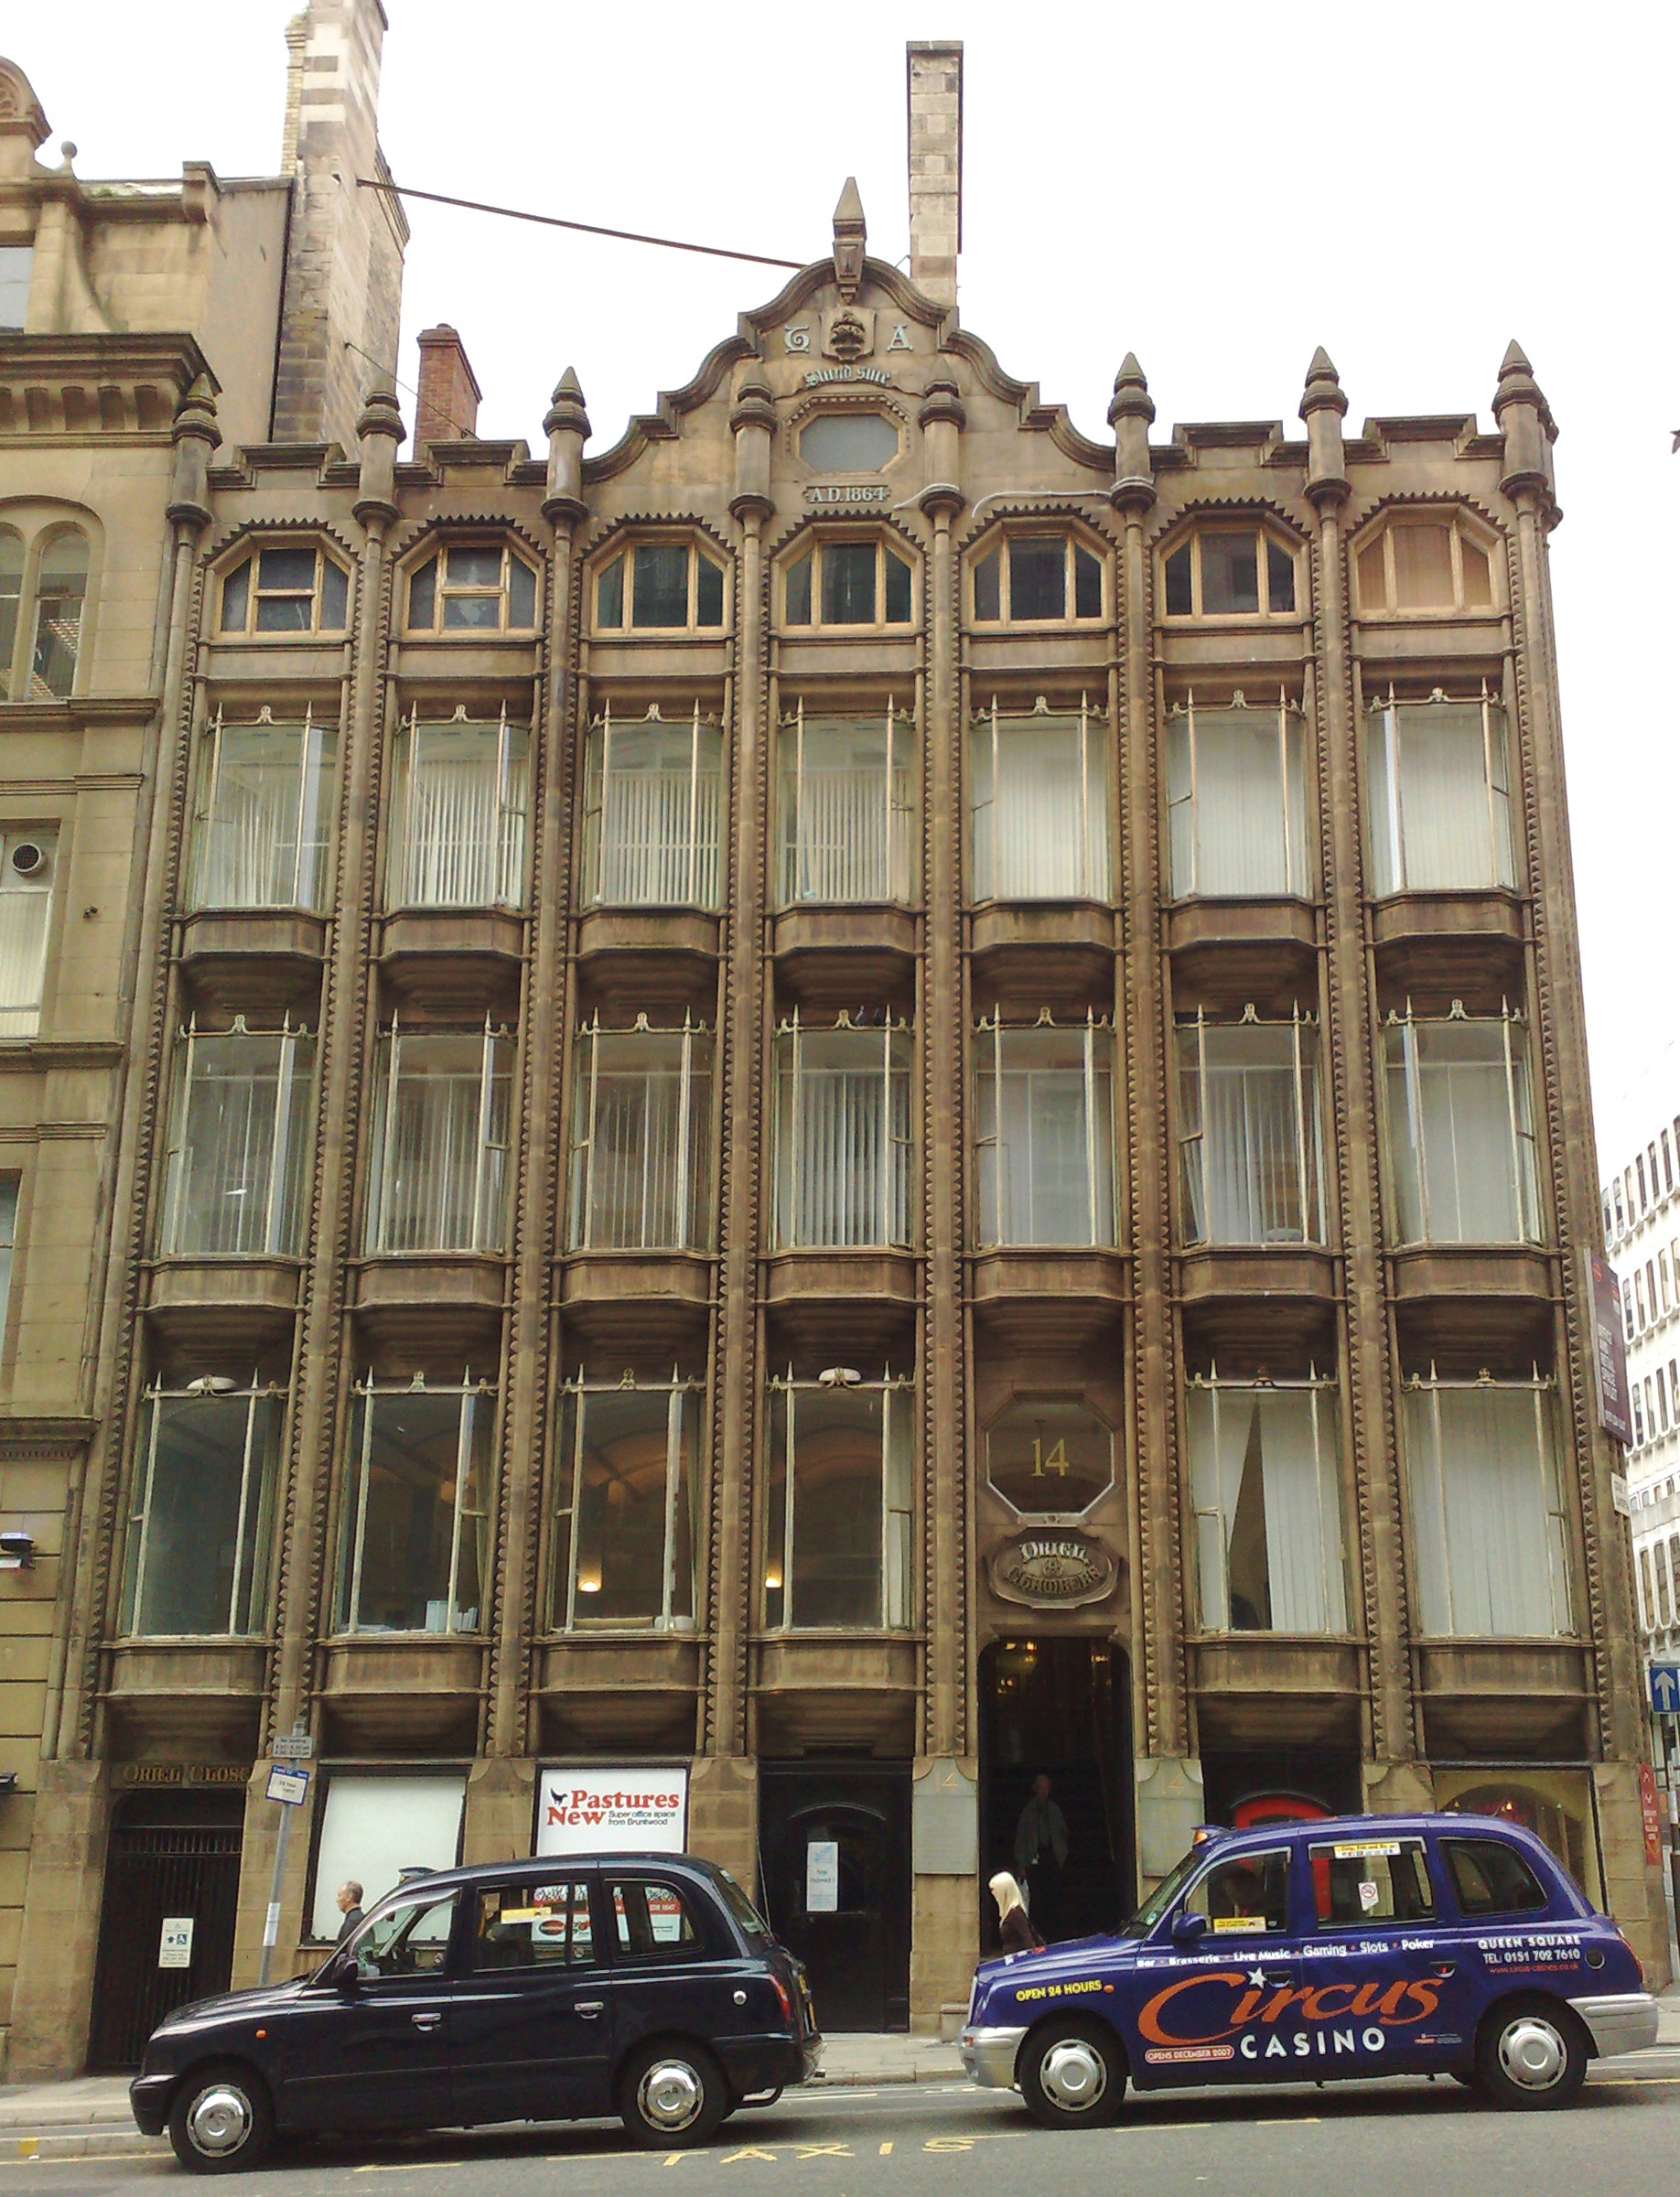 Oriel Chambers, Liverpool, England,1864. The world's first glass curtain walled building. The stone mullions are decorative.